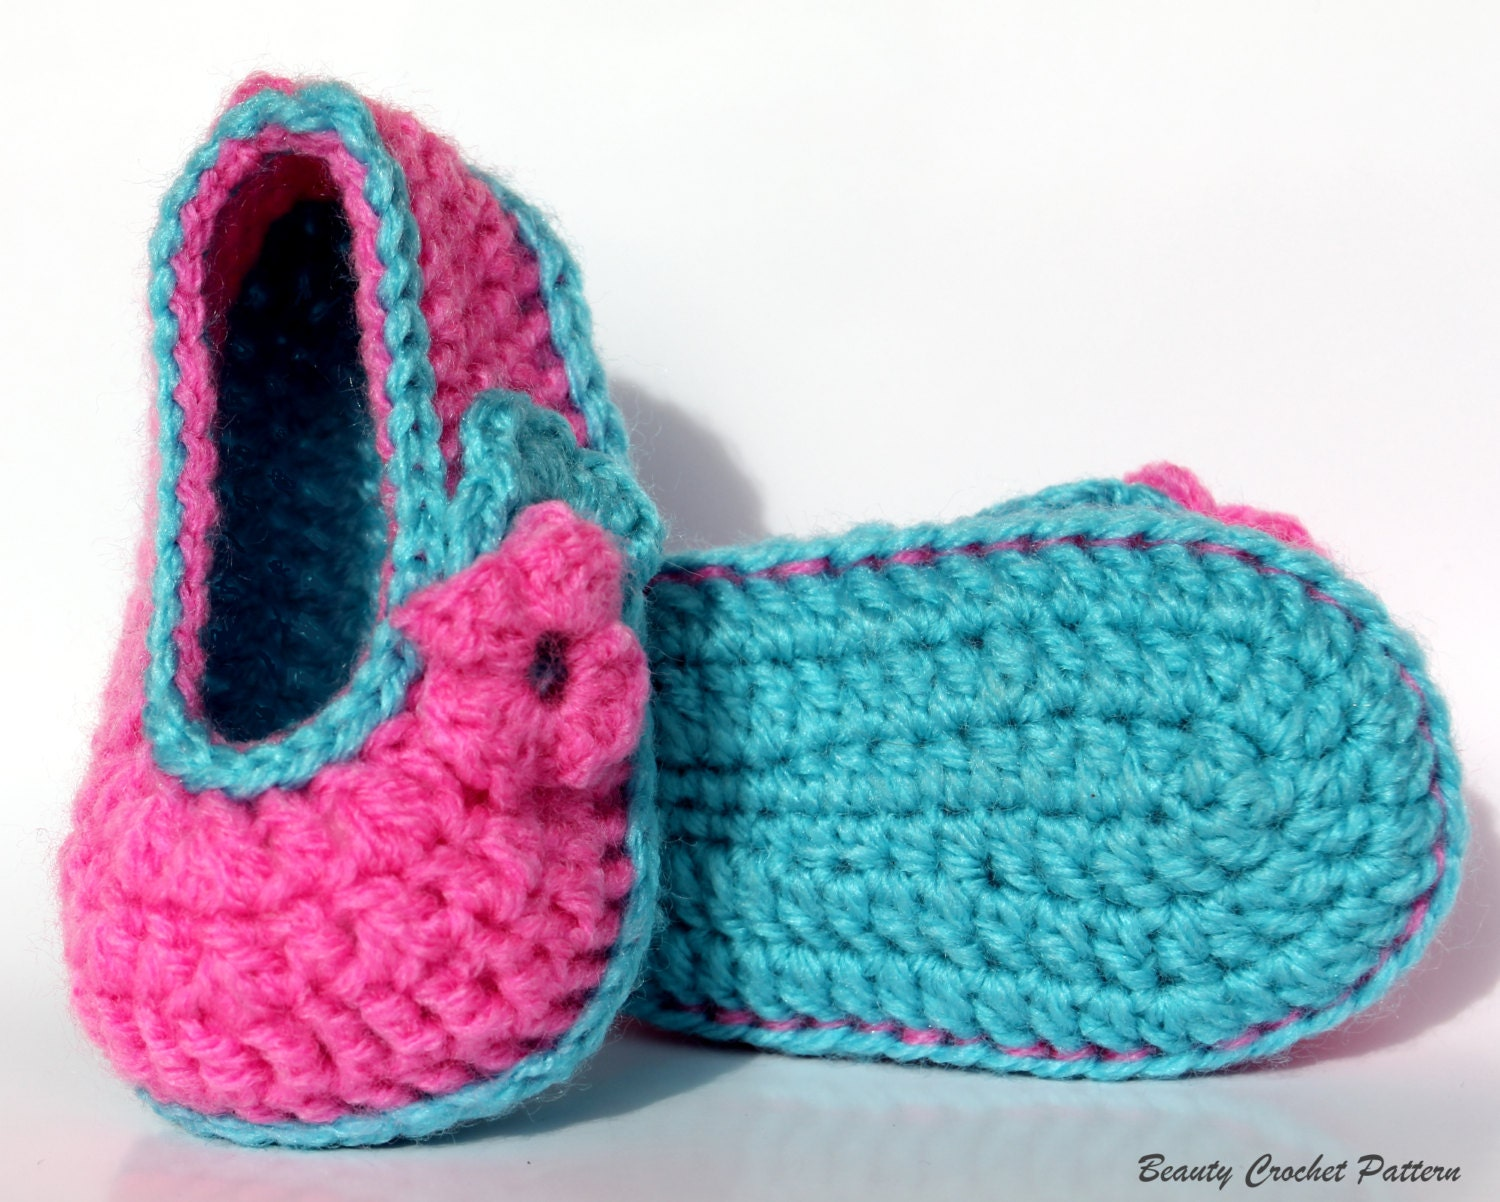 Crochet Baby Girl Boots Pattern : Crochet Baby Pattern Barbie Style Shoes Baby Girl Crochet